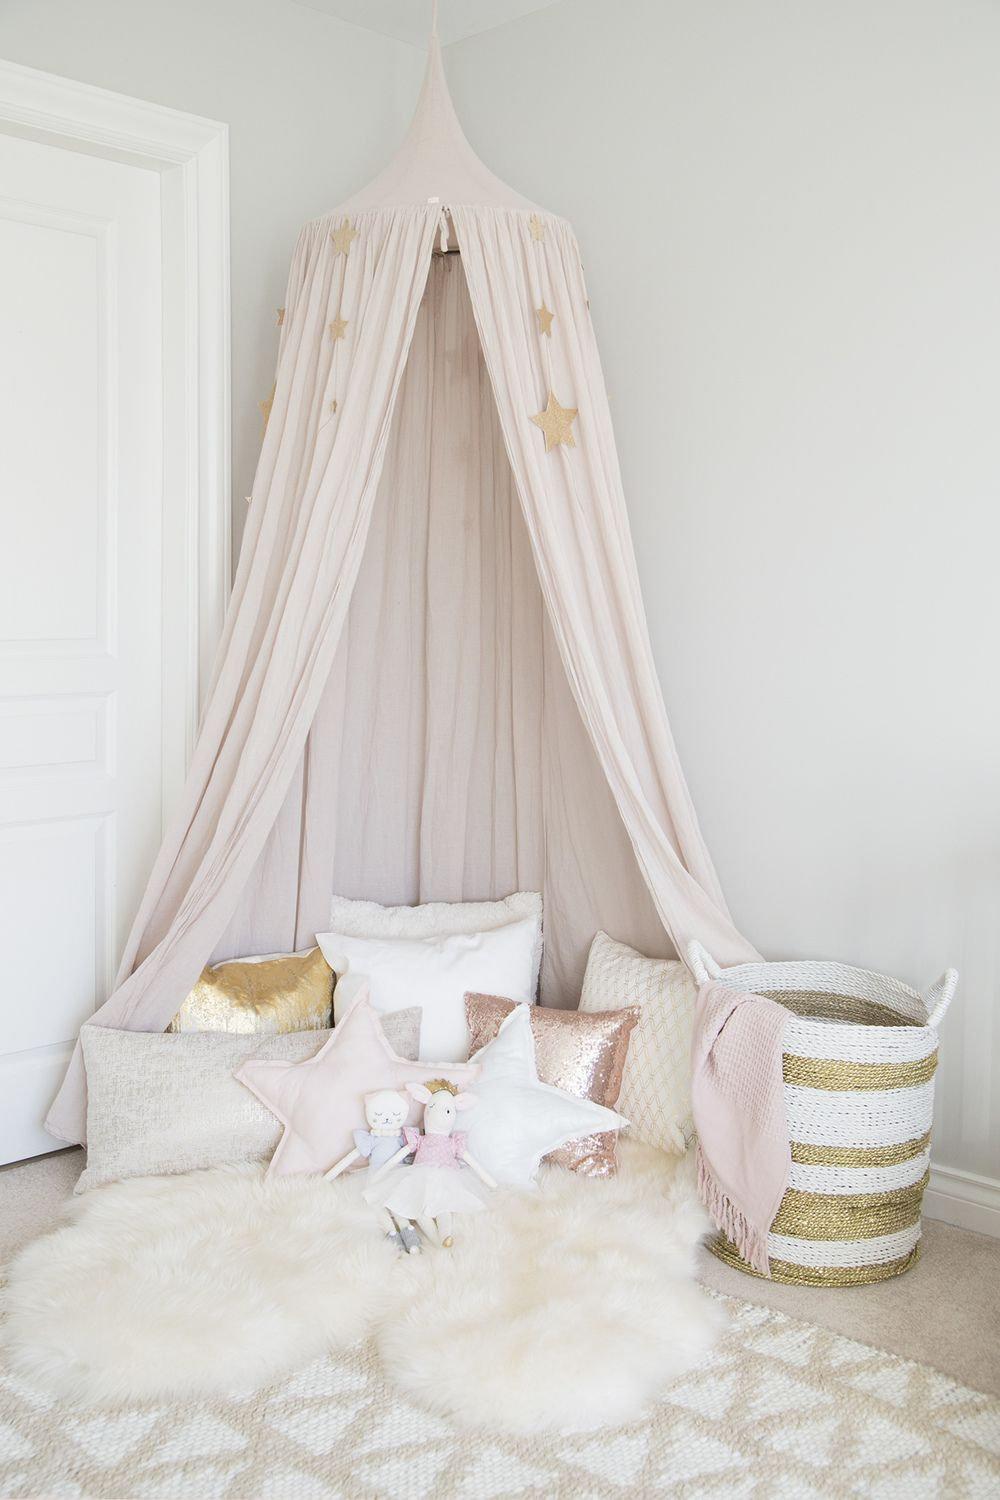 Numero 74 canopy with star pillows in girl room. Designed by Melissa Barling